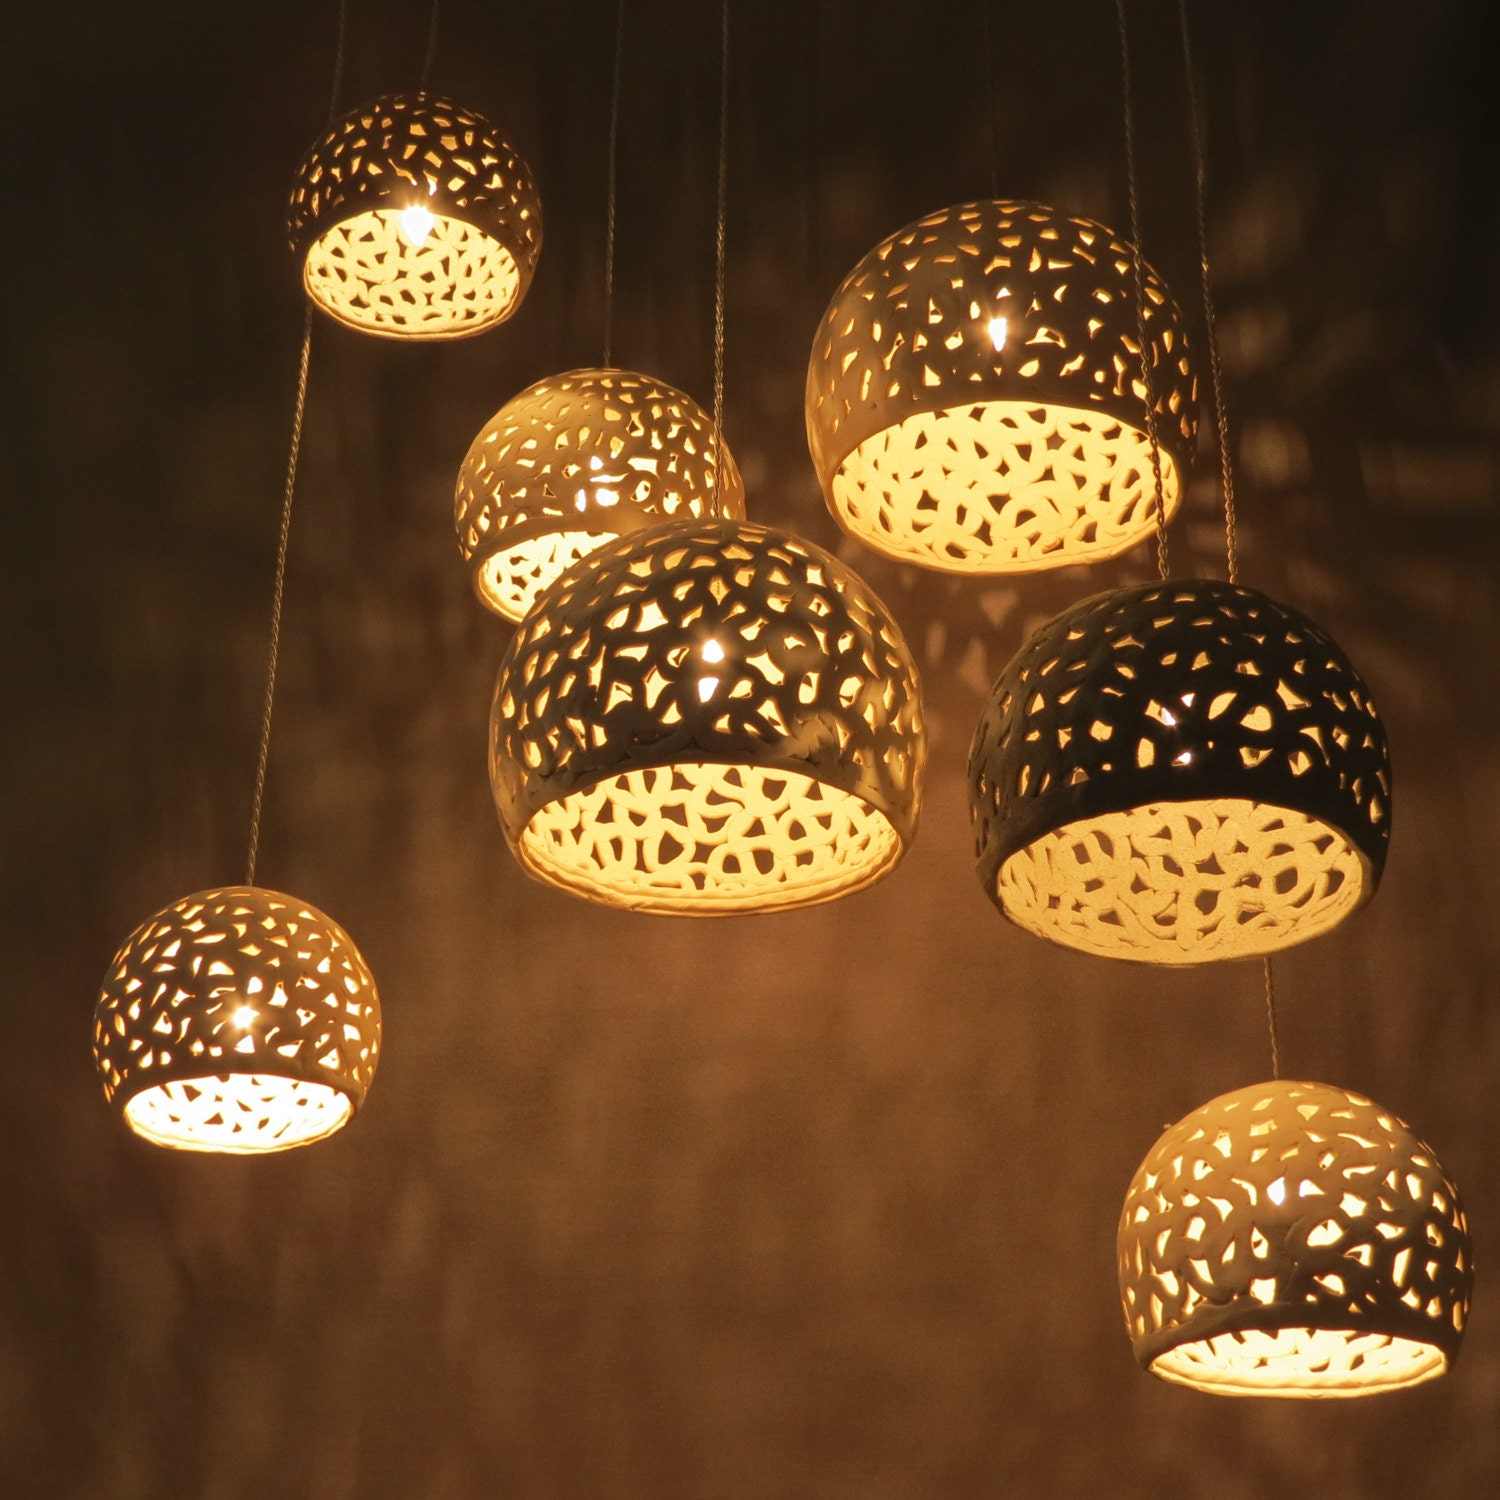 Pendant lights ceiling chandelier modern hanging light - Can light chandelier ...